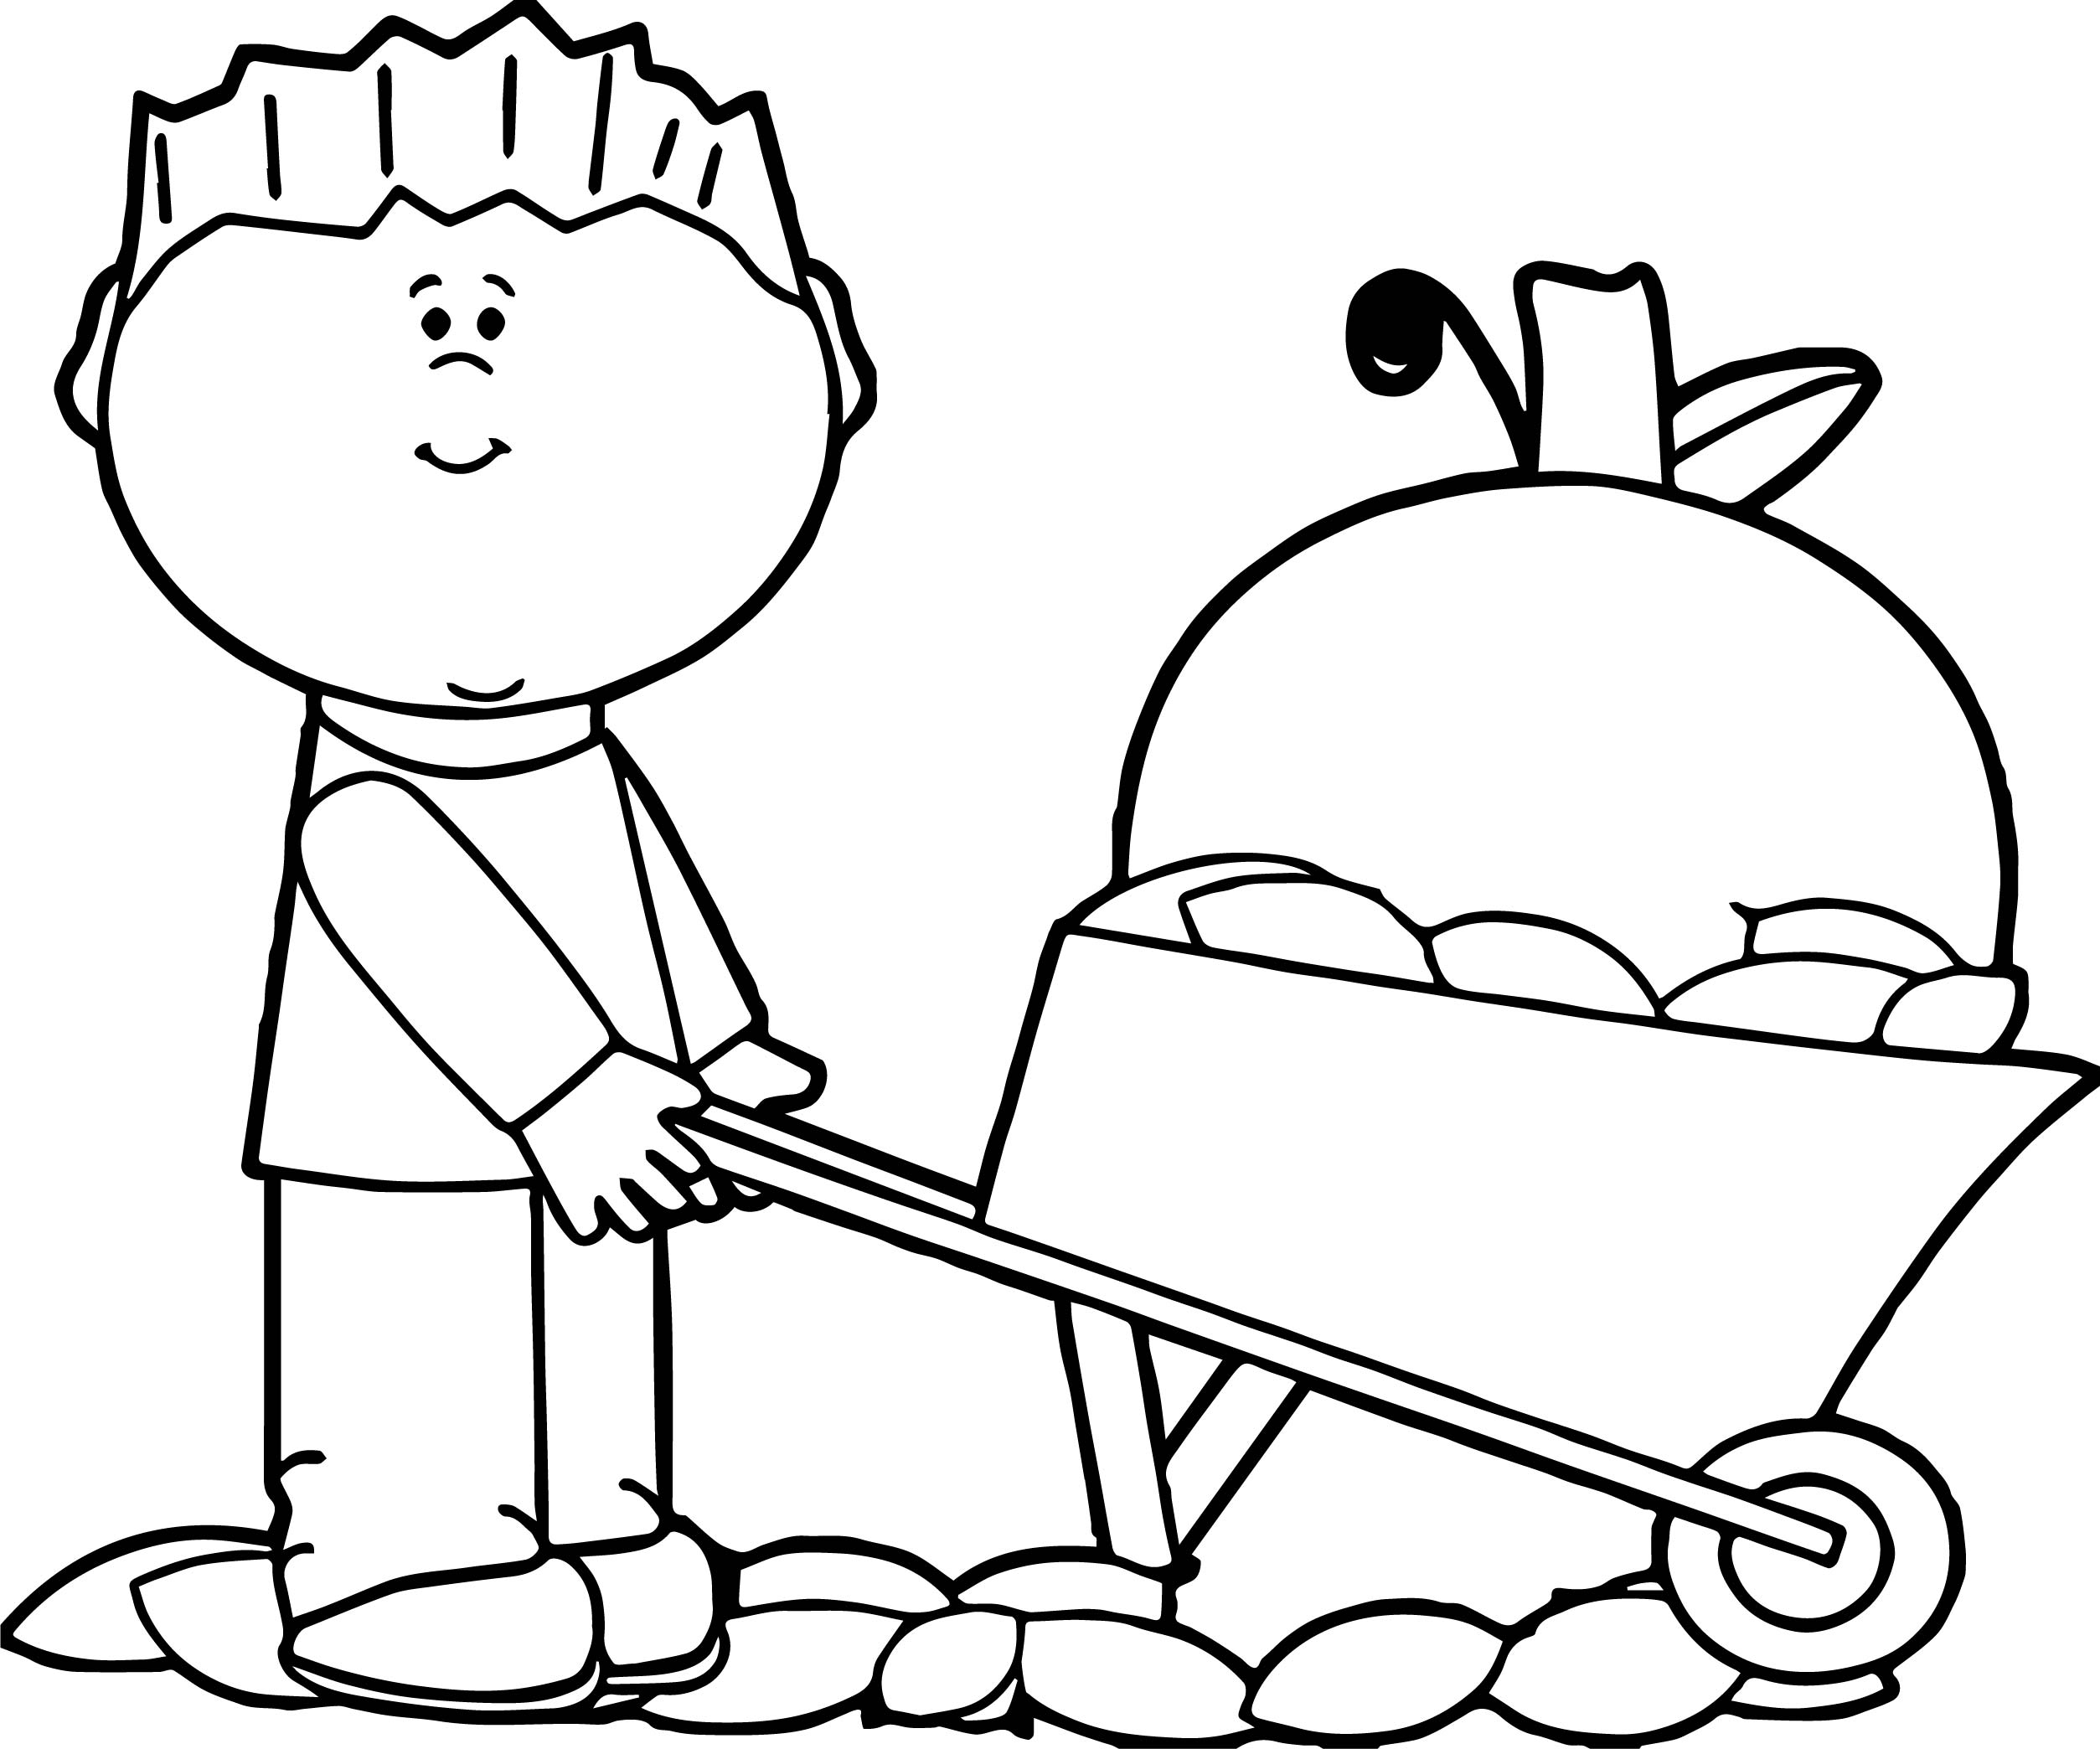 Fall Out Boy Coloring Pages Fall Out Boy Coloring Pages